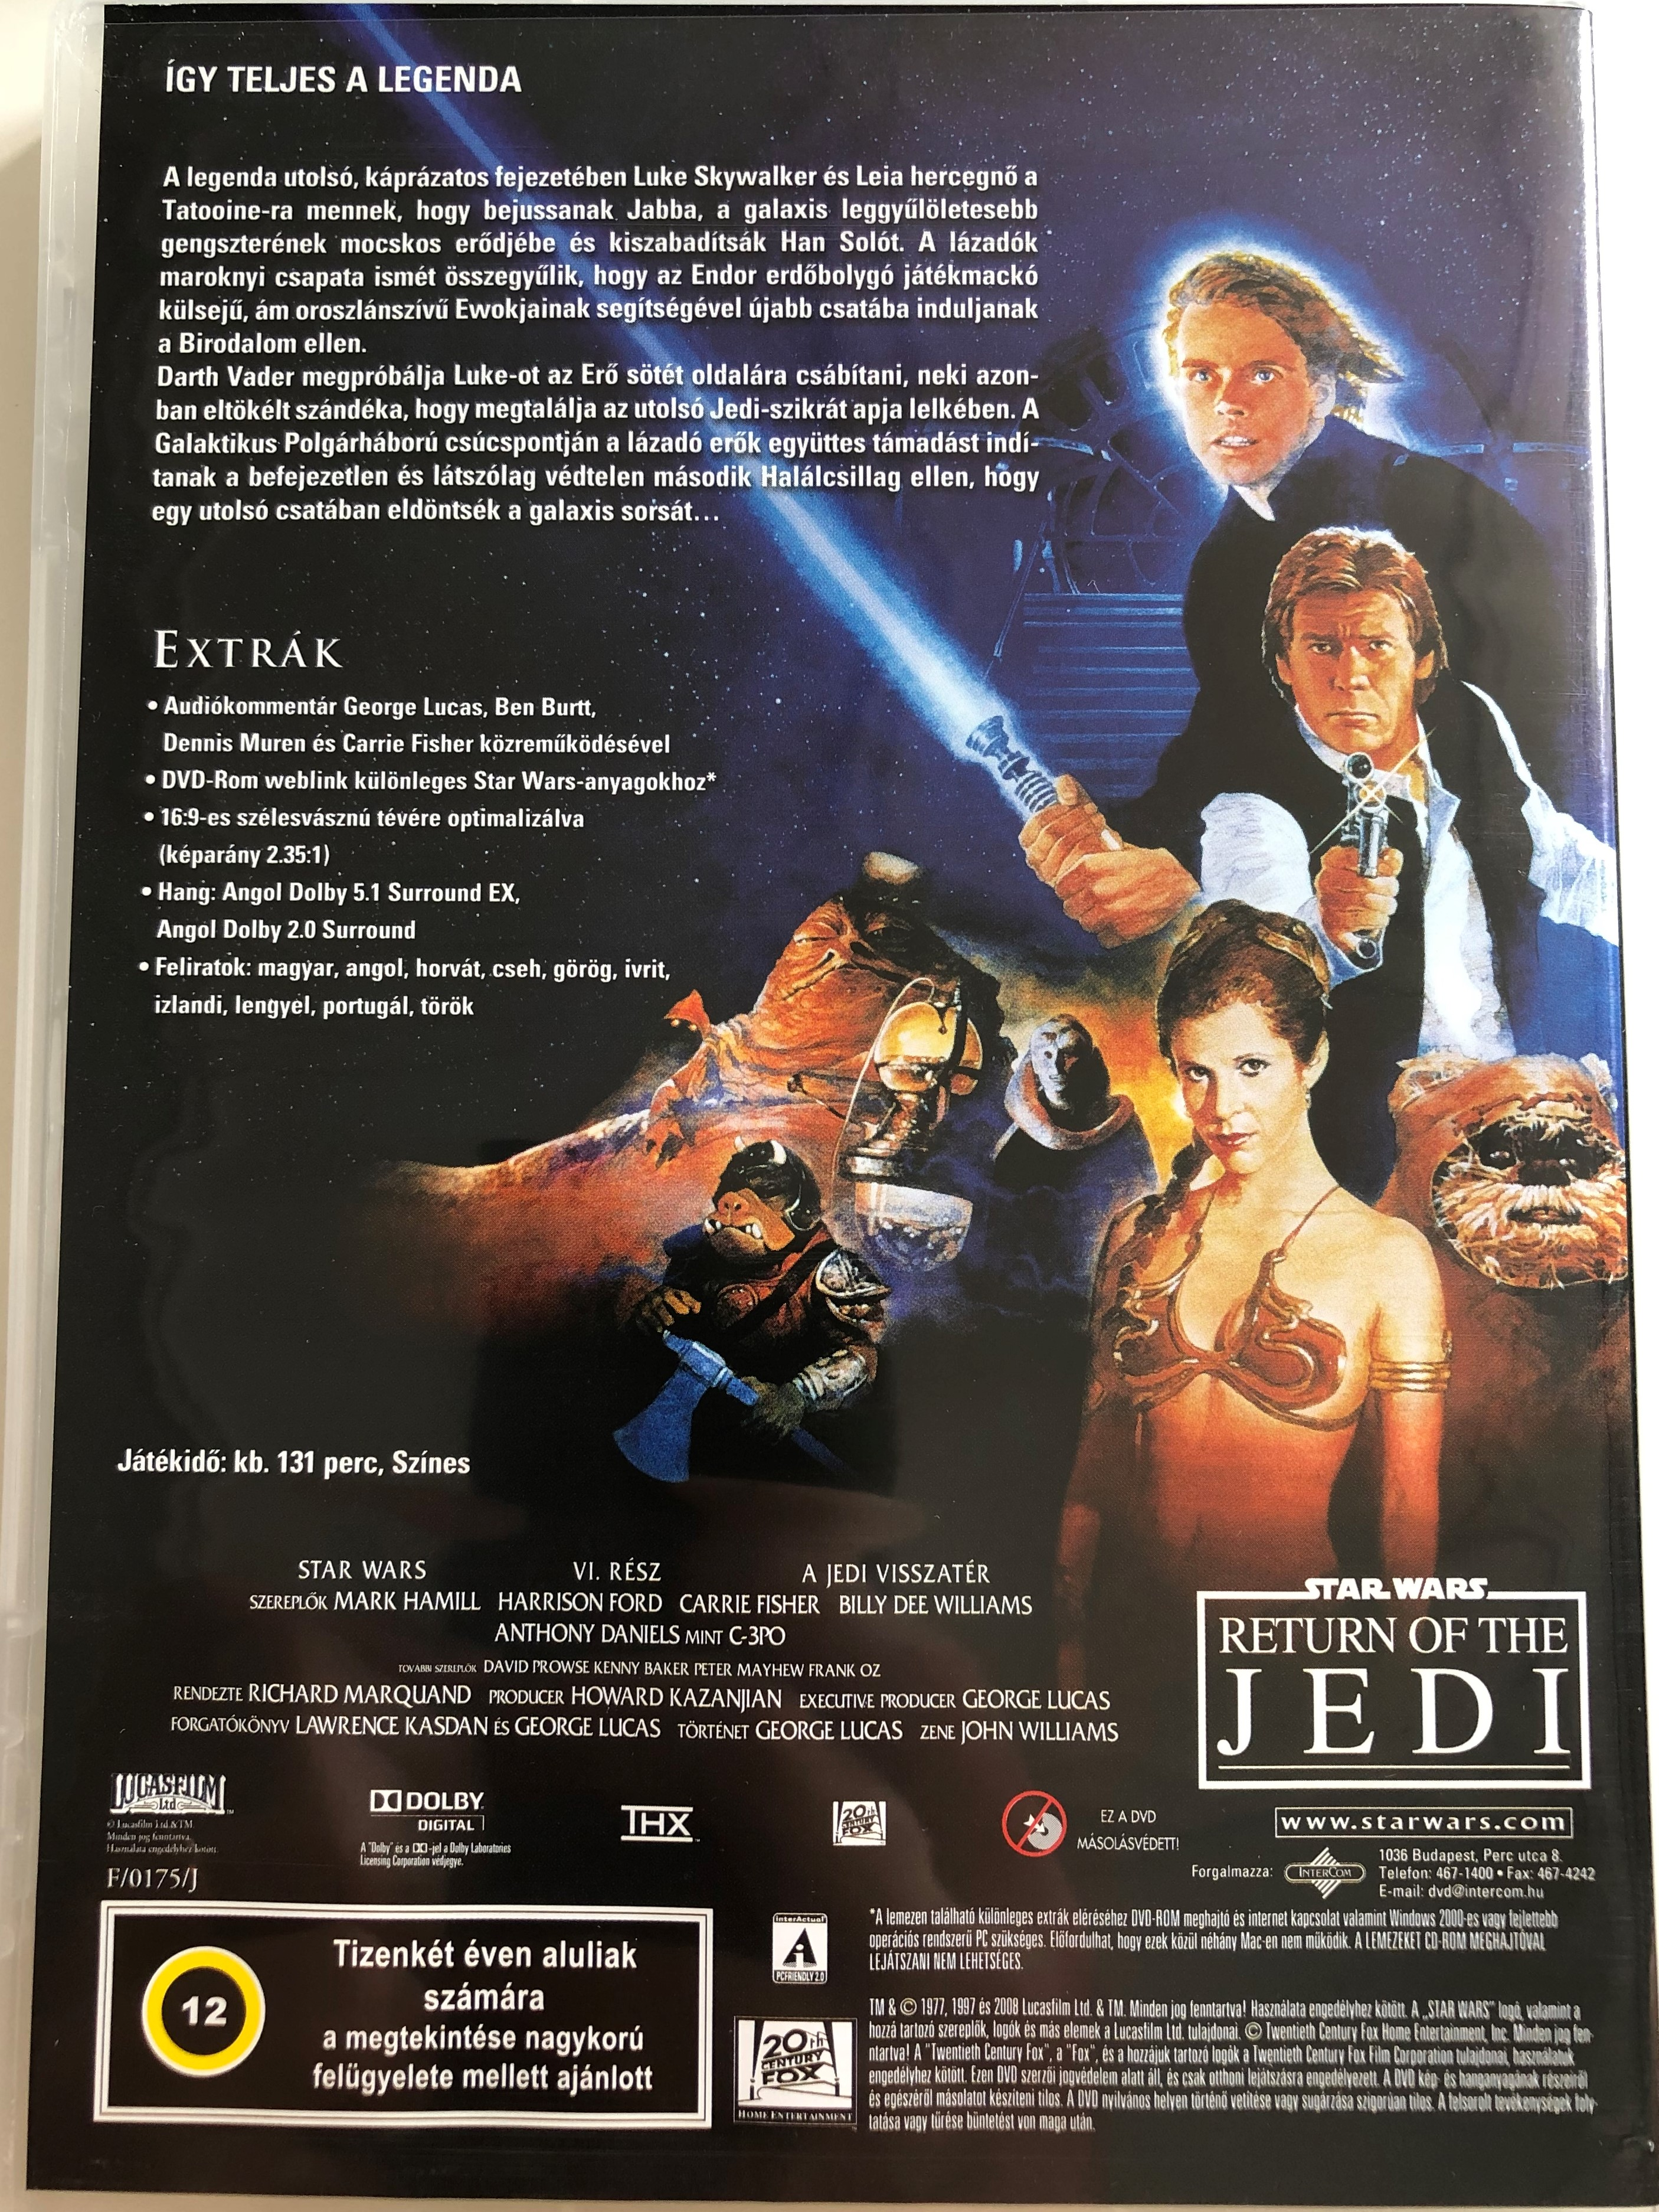 Star Wars Episode Vi Return Of The Jedi Dvd 1983 Star Wars Vi A Jedi Visszater Directed By Richard Marquand Starring Mark Hamill Harrison Ford Carrie Fisher Billy Dee Williams